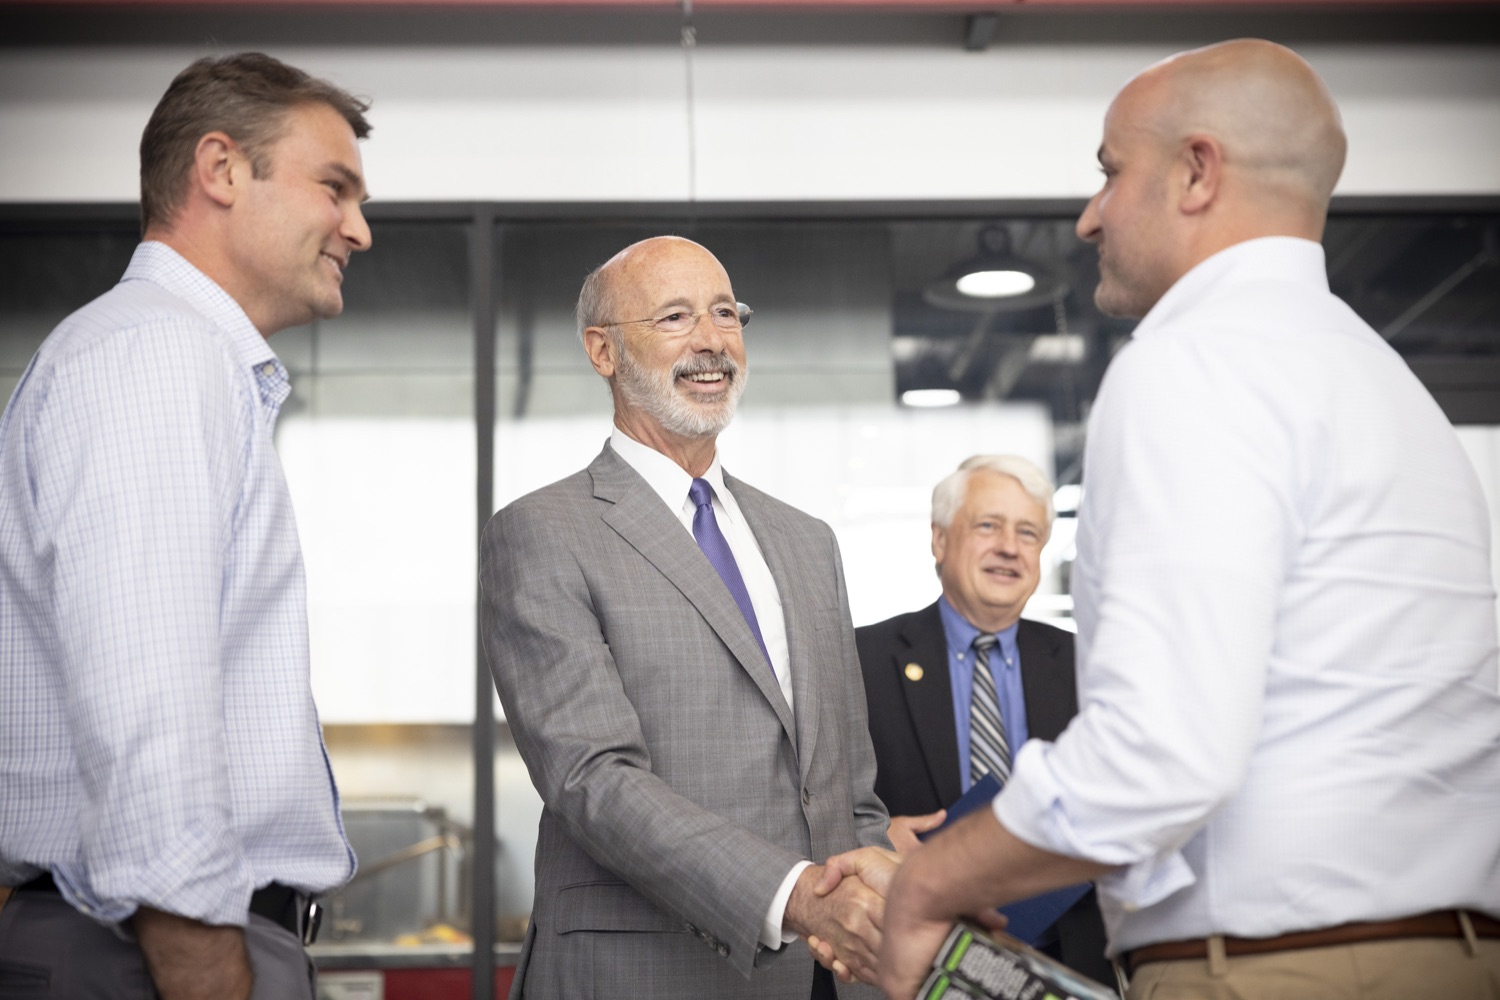 """<a href=""""https://filesource.wostreaming.net/commonwealthofpa/photo/18941_gov_economicDevelopment_dz_017.jpg"""" target=""""_blank"""">⇣Download Photo<br></a>Joey Piazza, CEO  Mikeys greeting Pennsylvania Governor Tom Wolf.  Governor Tom Wolf today visited Factory LLC in Bethlehem to tour the facility and highlight the importance of investing in Pennsylvanias start-up companies. During the visit, he met with companies affiliated with Factory, including Stuffed Puffs®, which received a $1 million funding proposal from the commonwealth in 2019 to expand its manufacturing operations and create jobs, Mikeys®, Pipcorn®, Honey Stinger®, and ROAR® Organic. Bethlehem, PA  July 19, 2021"""